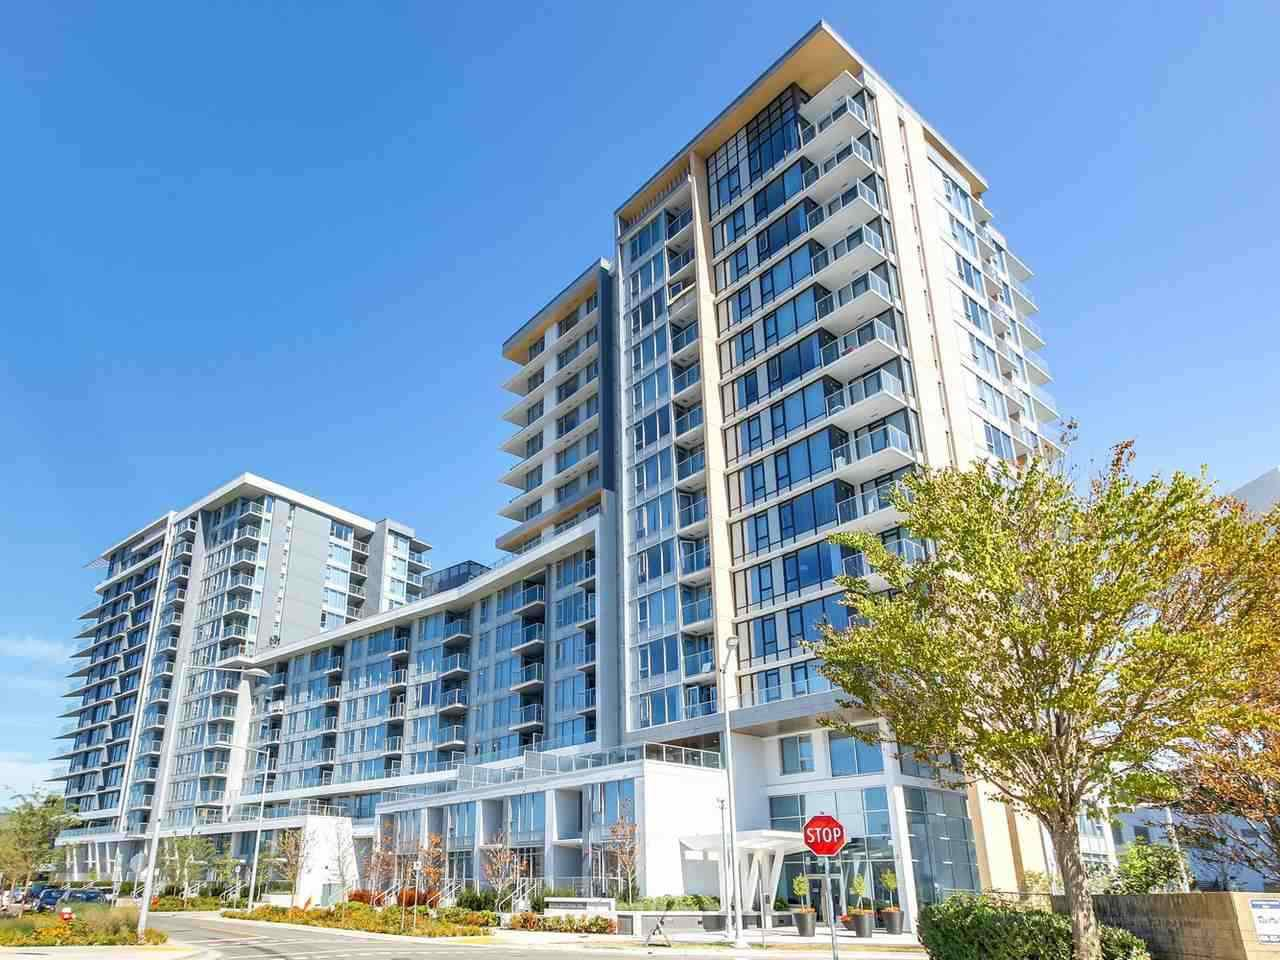 Main Photo: 1503 - 3331 Brown Road in Richmond: West Cambie Condo for sale : MLS®# R2418861